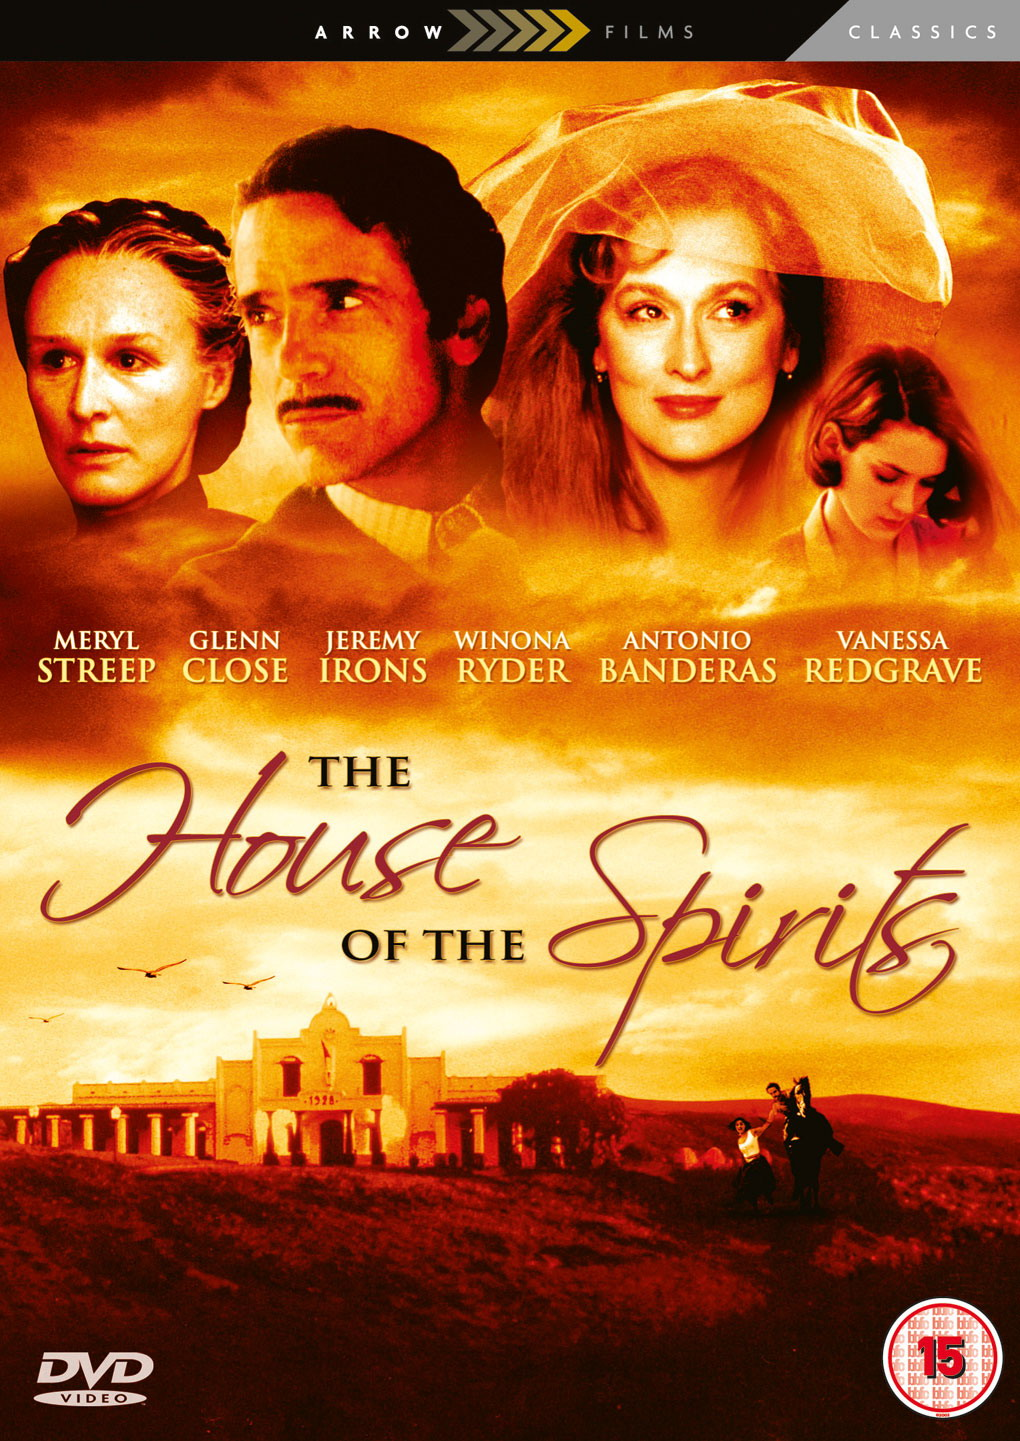 The House of the Spirits / Το Σπίτι των Πνευμάτων (1993)